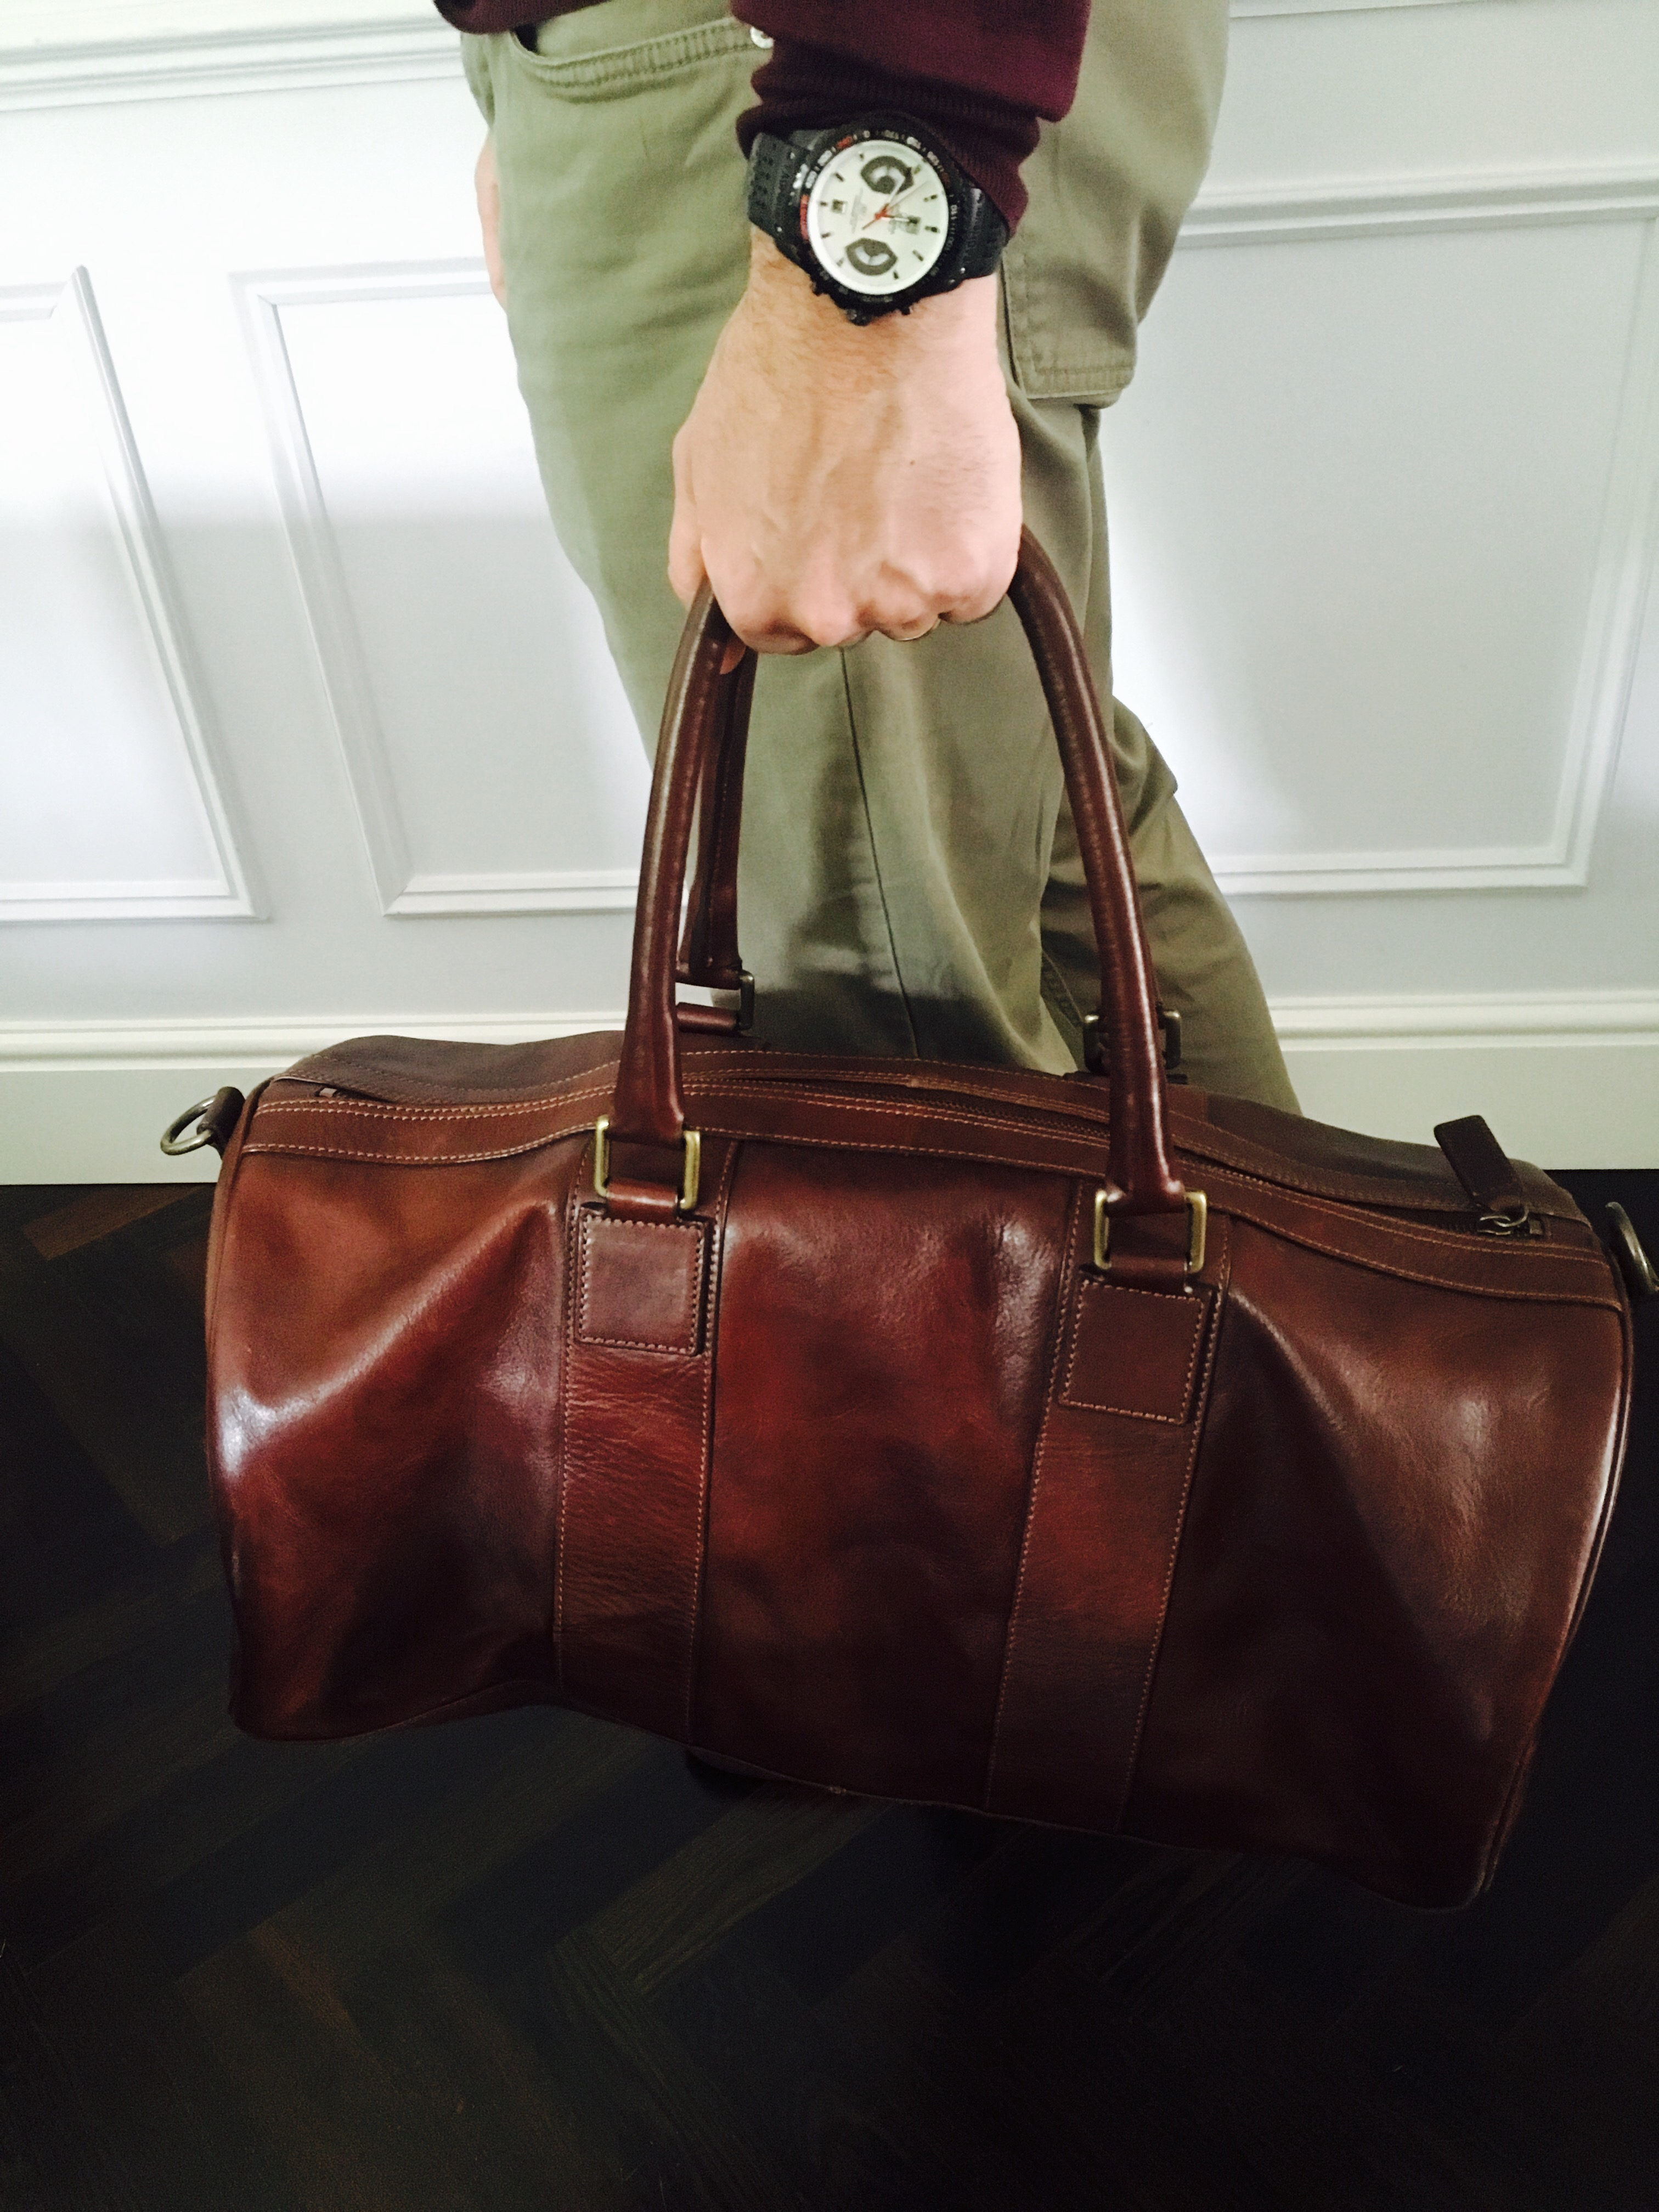 6644e9970a Tips on buying a weekend bag  My advice would be to invest in leather over  any other material. It looks great